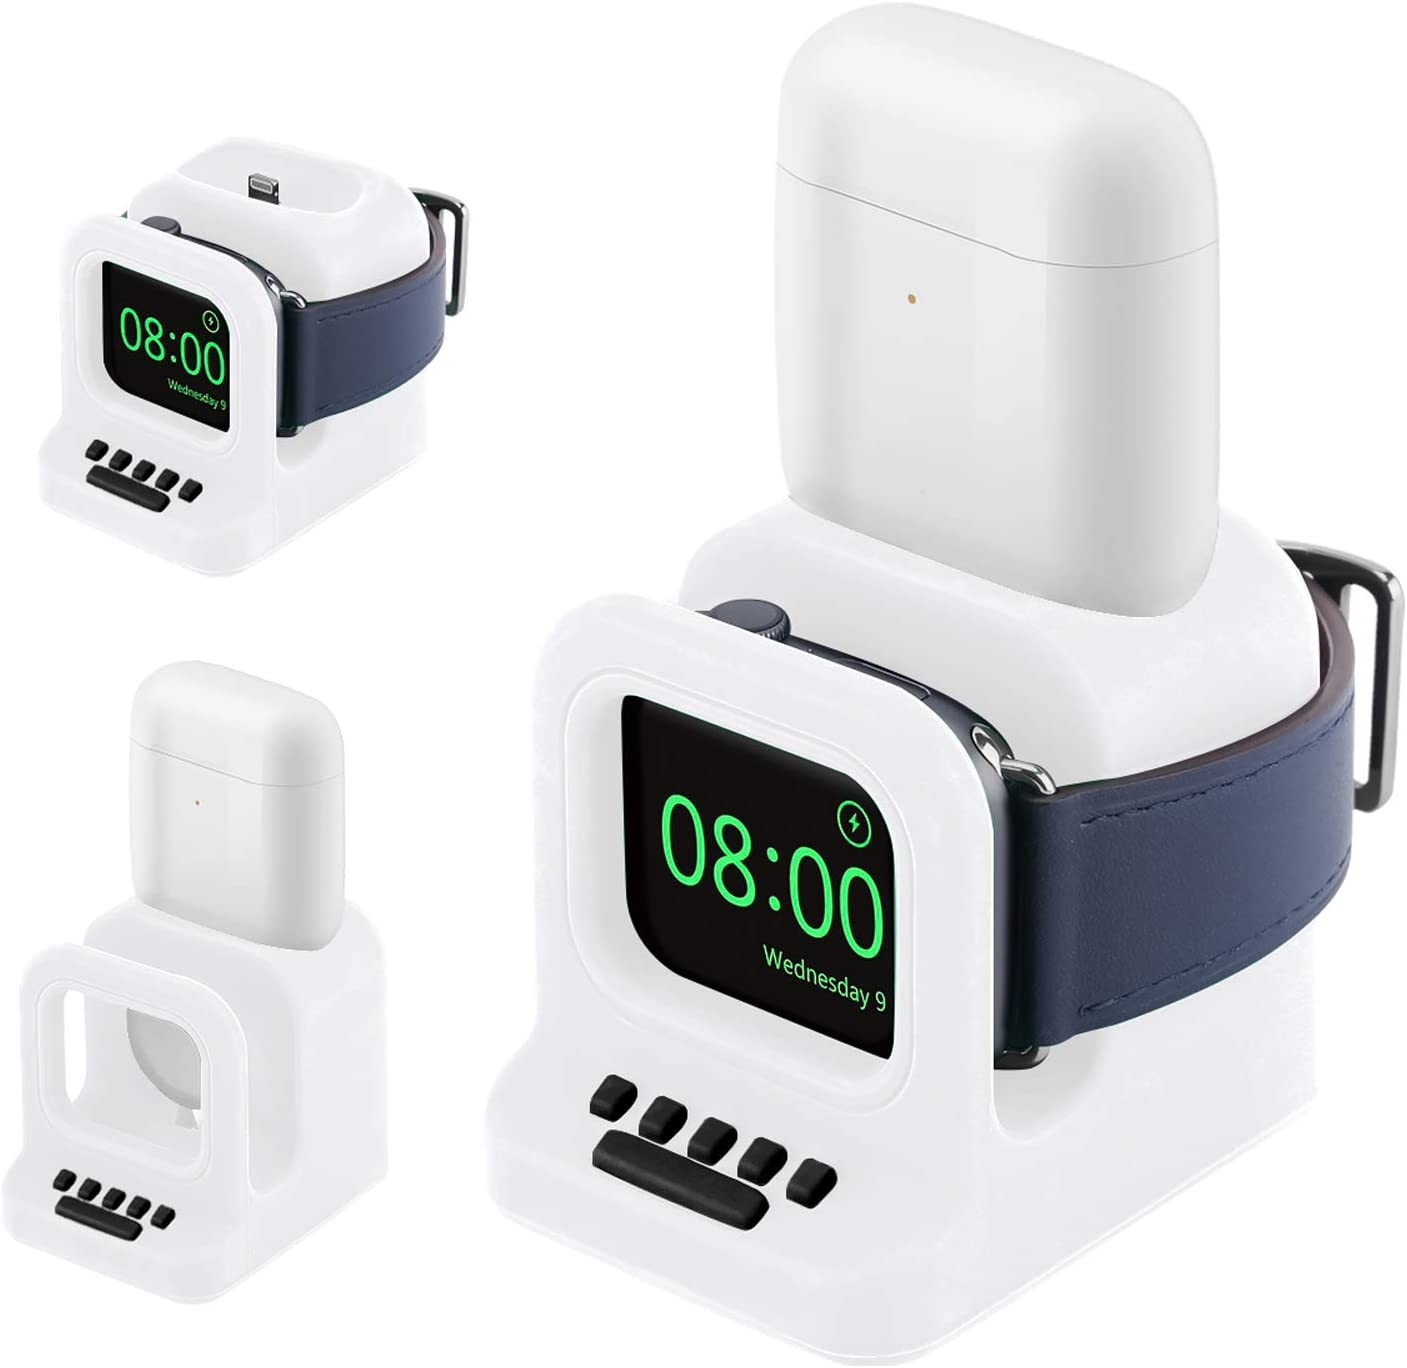 Watbro Watch AirPods Two in one Charger Storage Stand Compatible with Apple Watch 38mm 40mm 42mm 44mm iWatch Series SE/6/5/4/3/2/1,Apple Watch AirPods Accessory Charger Stand (Cables NOT Included)